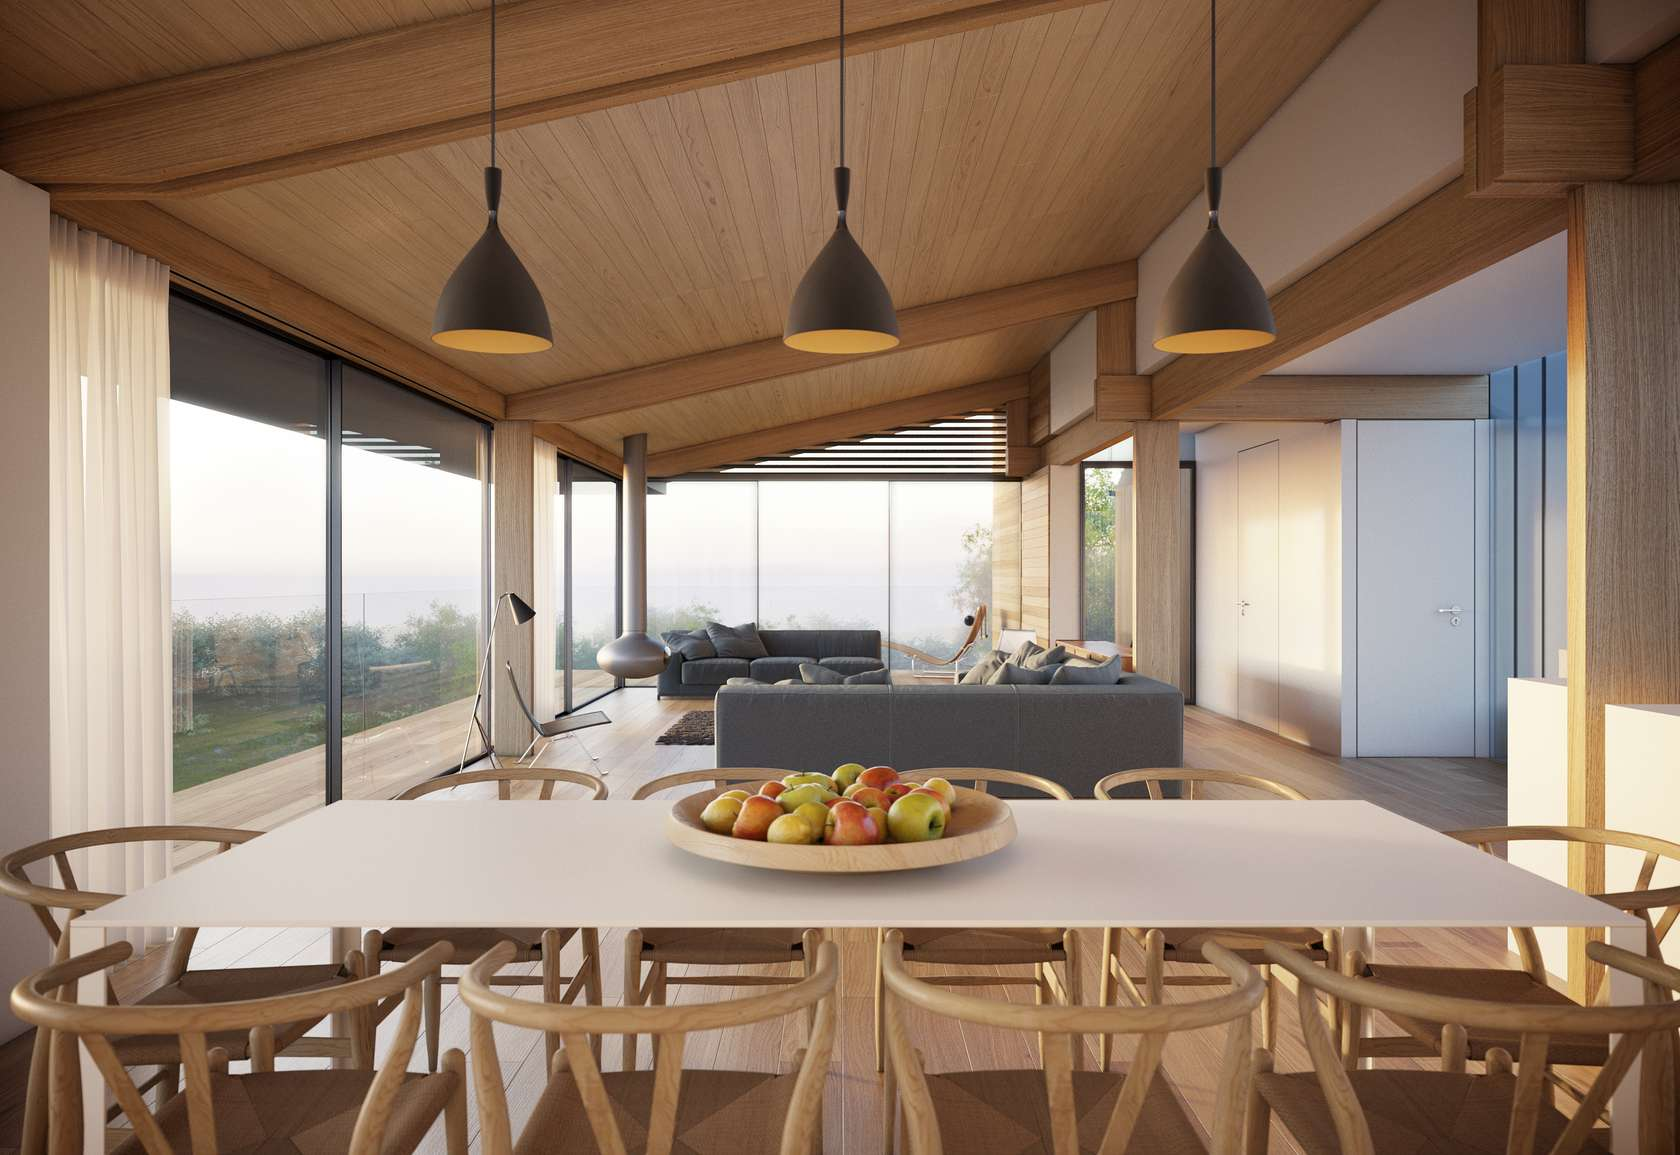 Dining Table, Pendant Lighting, Open Plan Living, Home on the Gower Peninsula in South Wales